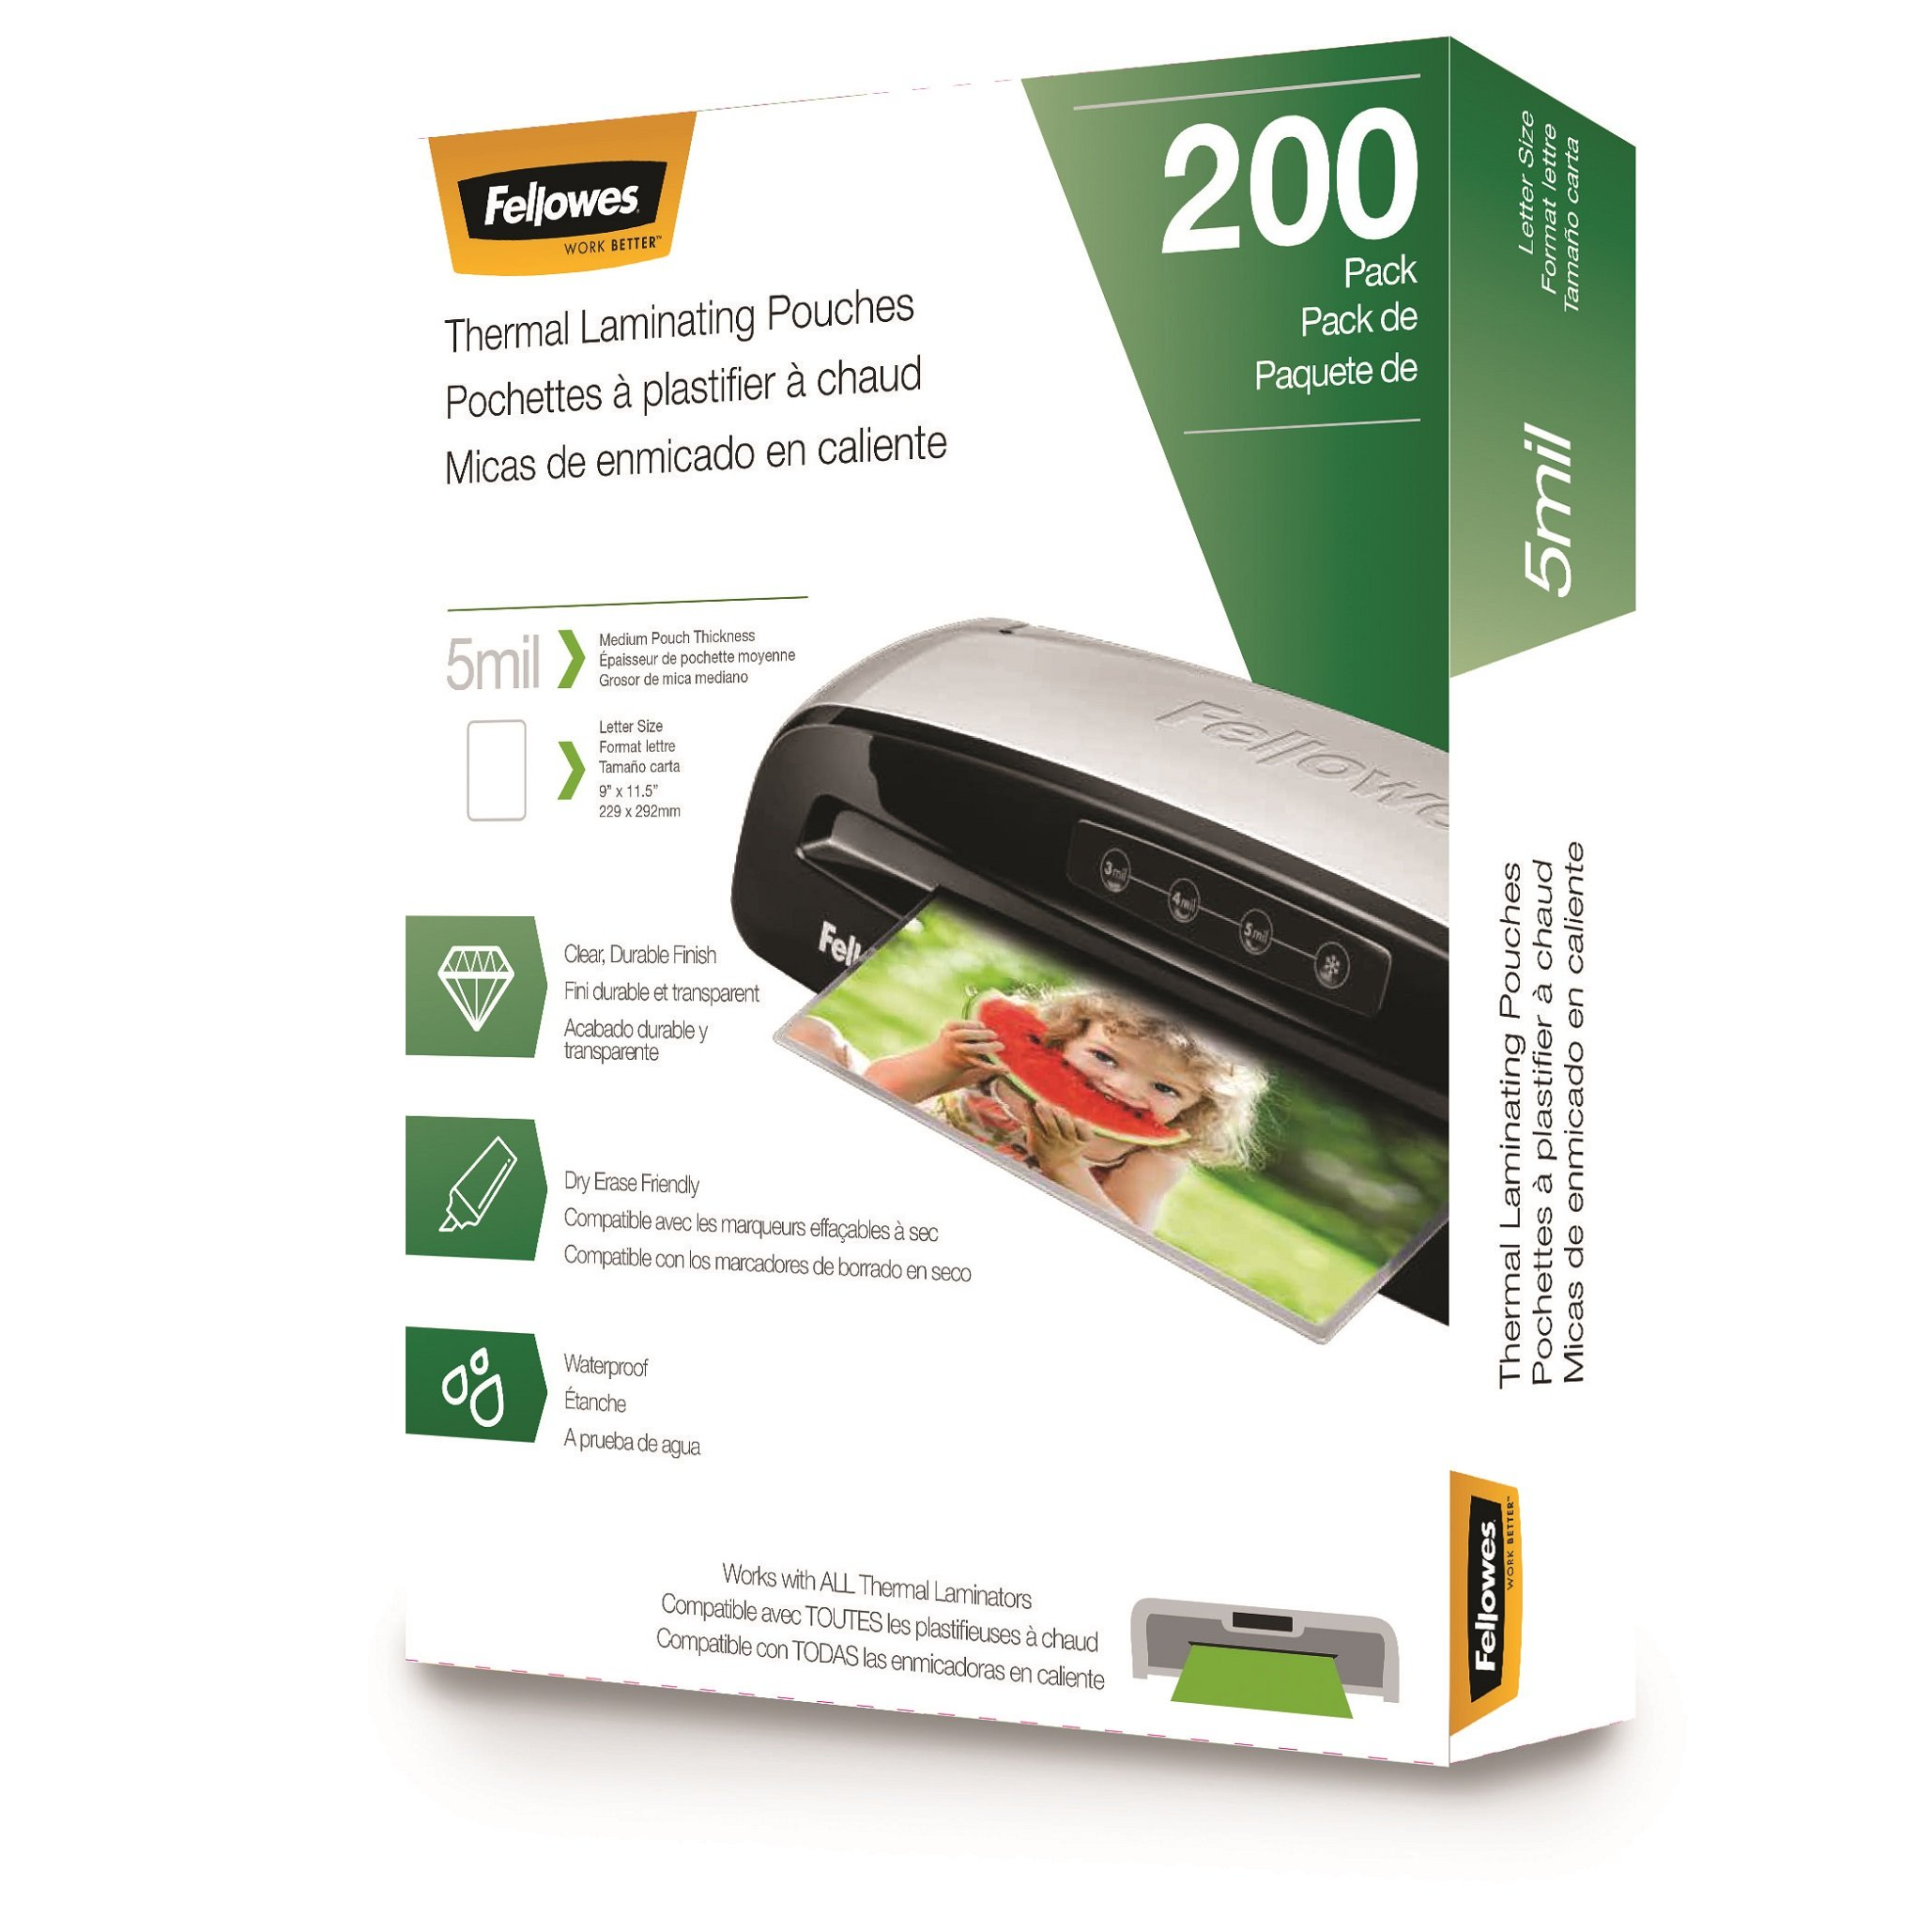 Fellowes Thermal Laminating Pouches by Fellowes